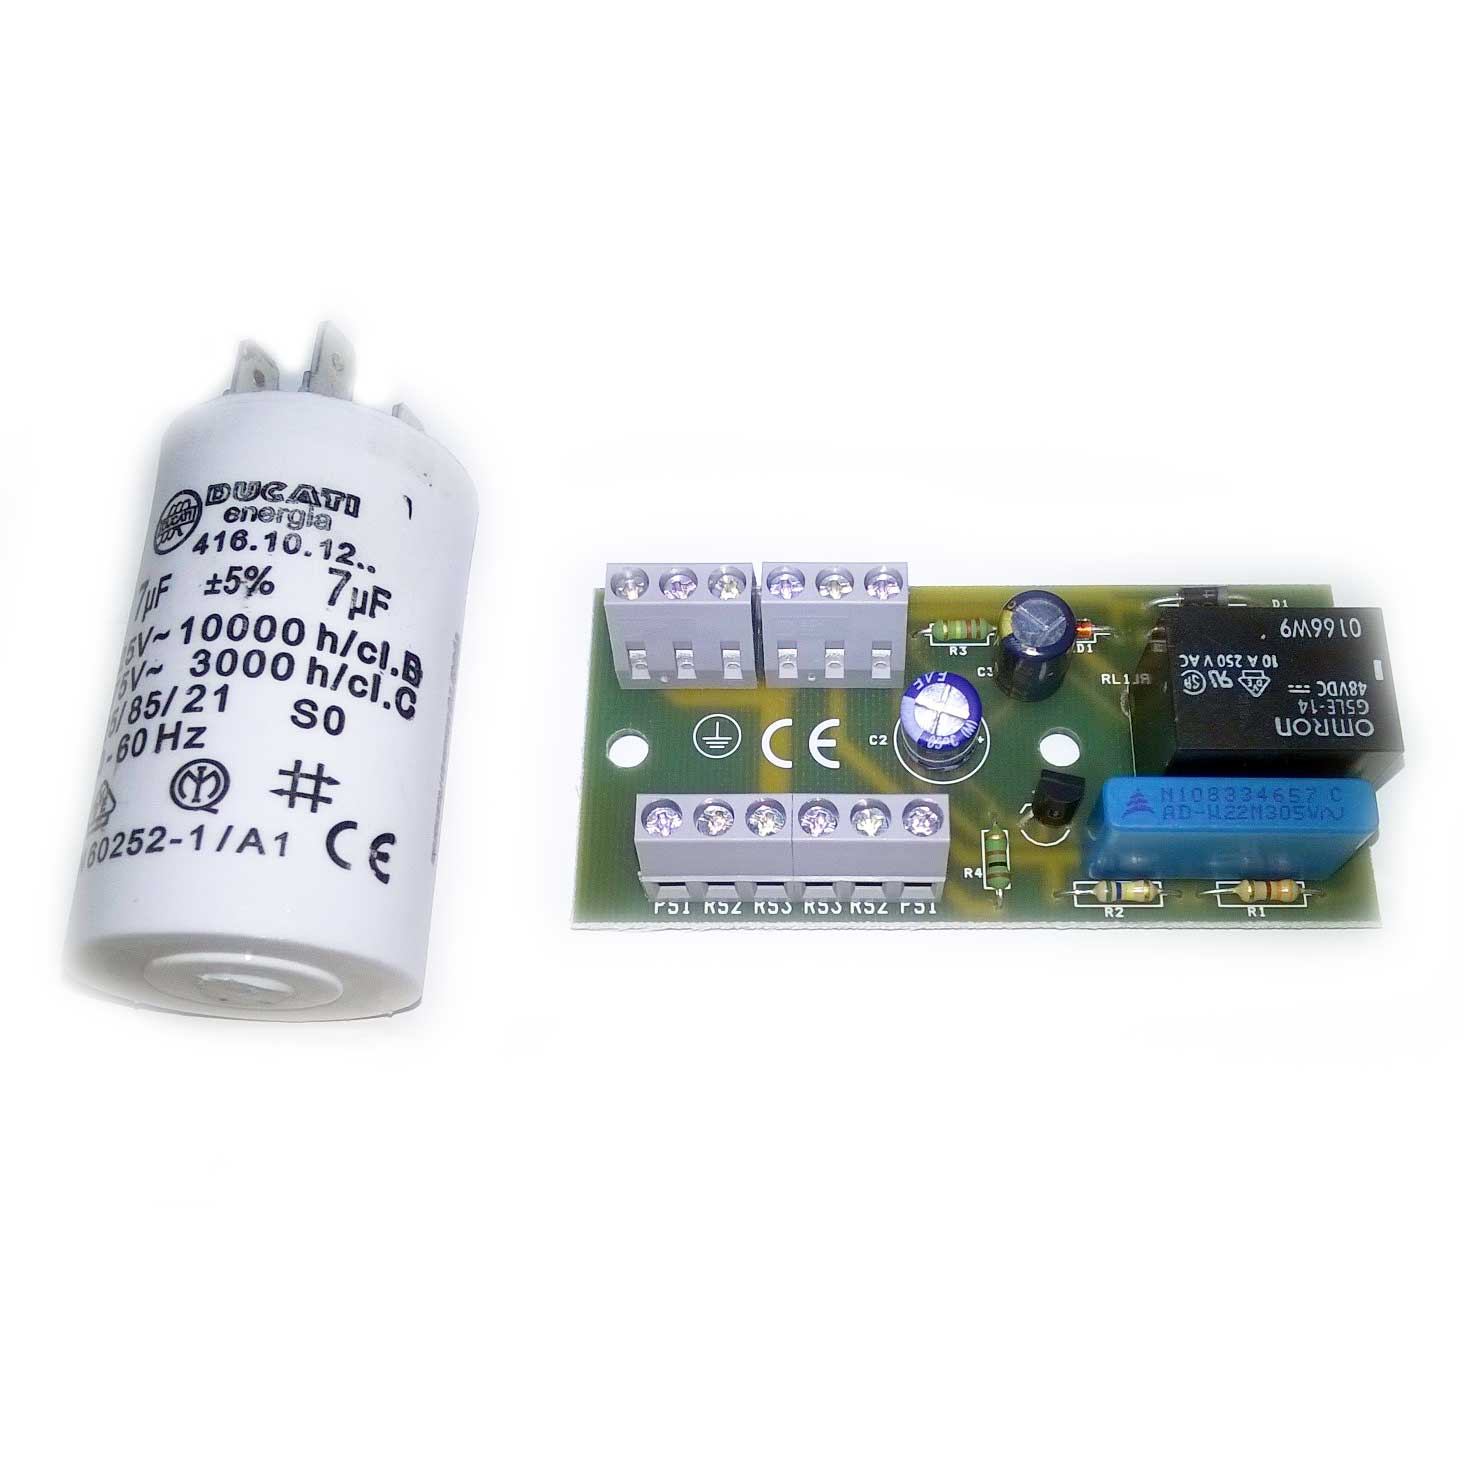 Compatible PCB Board with 7uF Capacitor for Stuart Turner Pump on